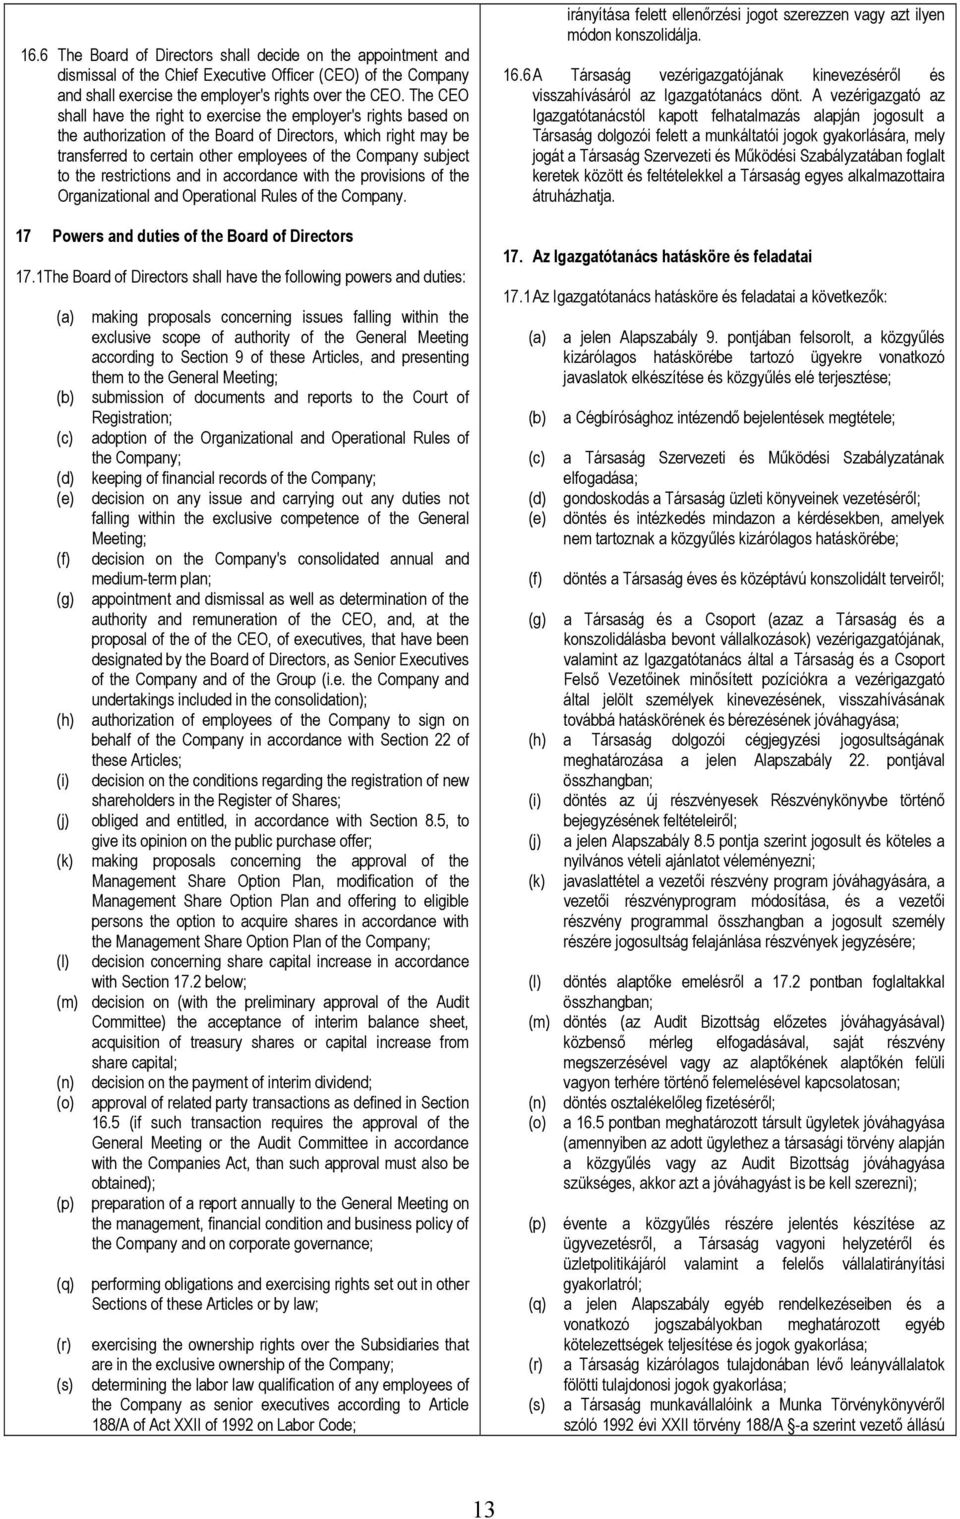 to the restrictions and in accordance with the provisions of the Organizational and Operational Rules of the Company. 17 Powers and duties of the Board of Directors 17.